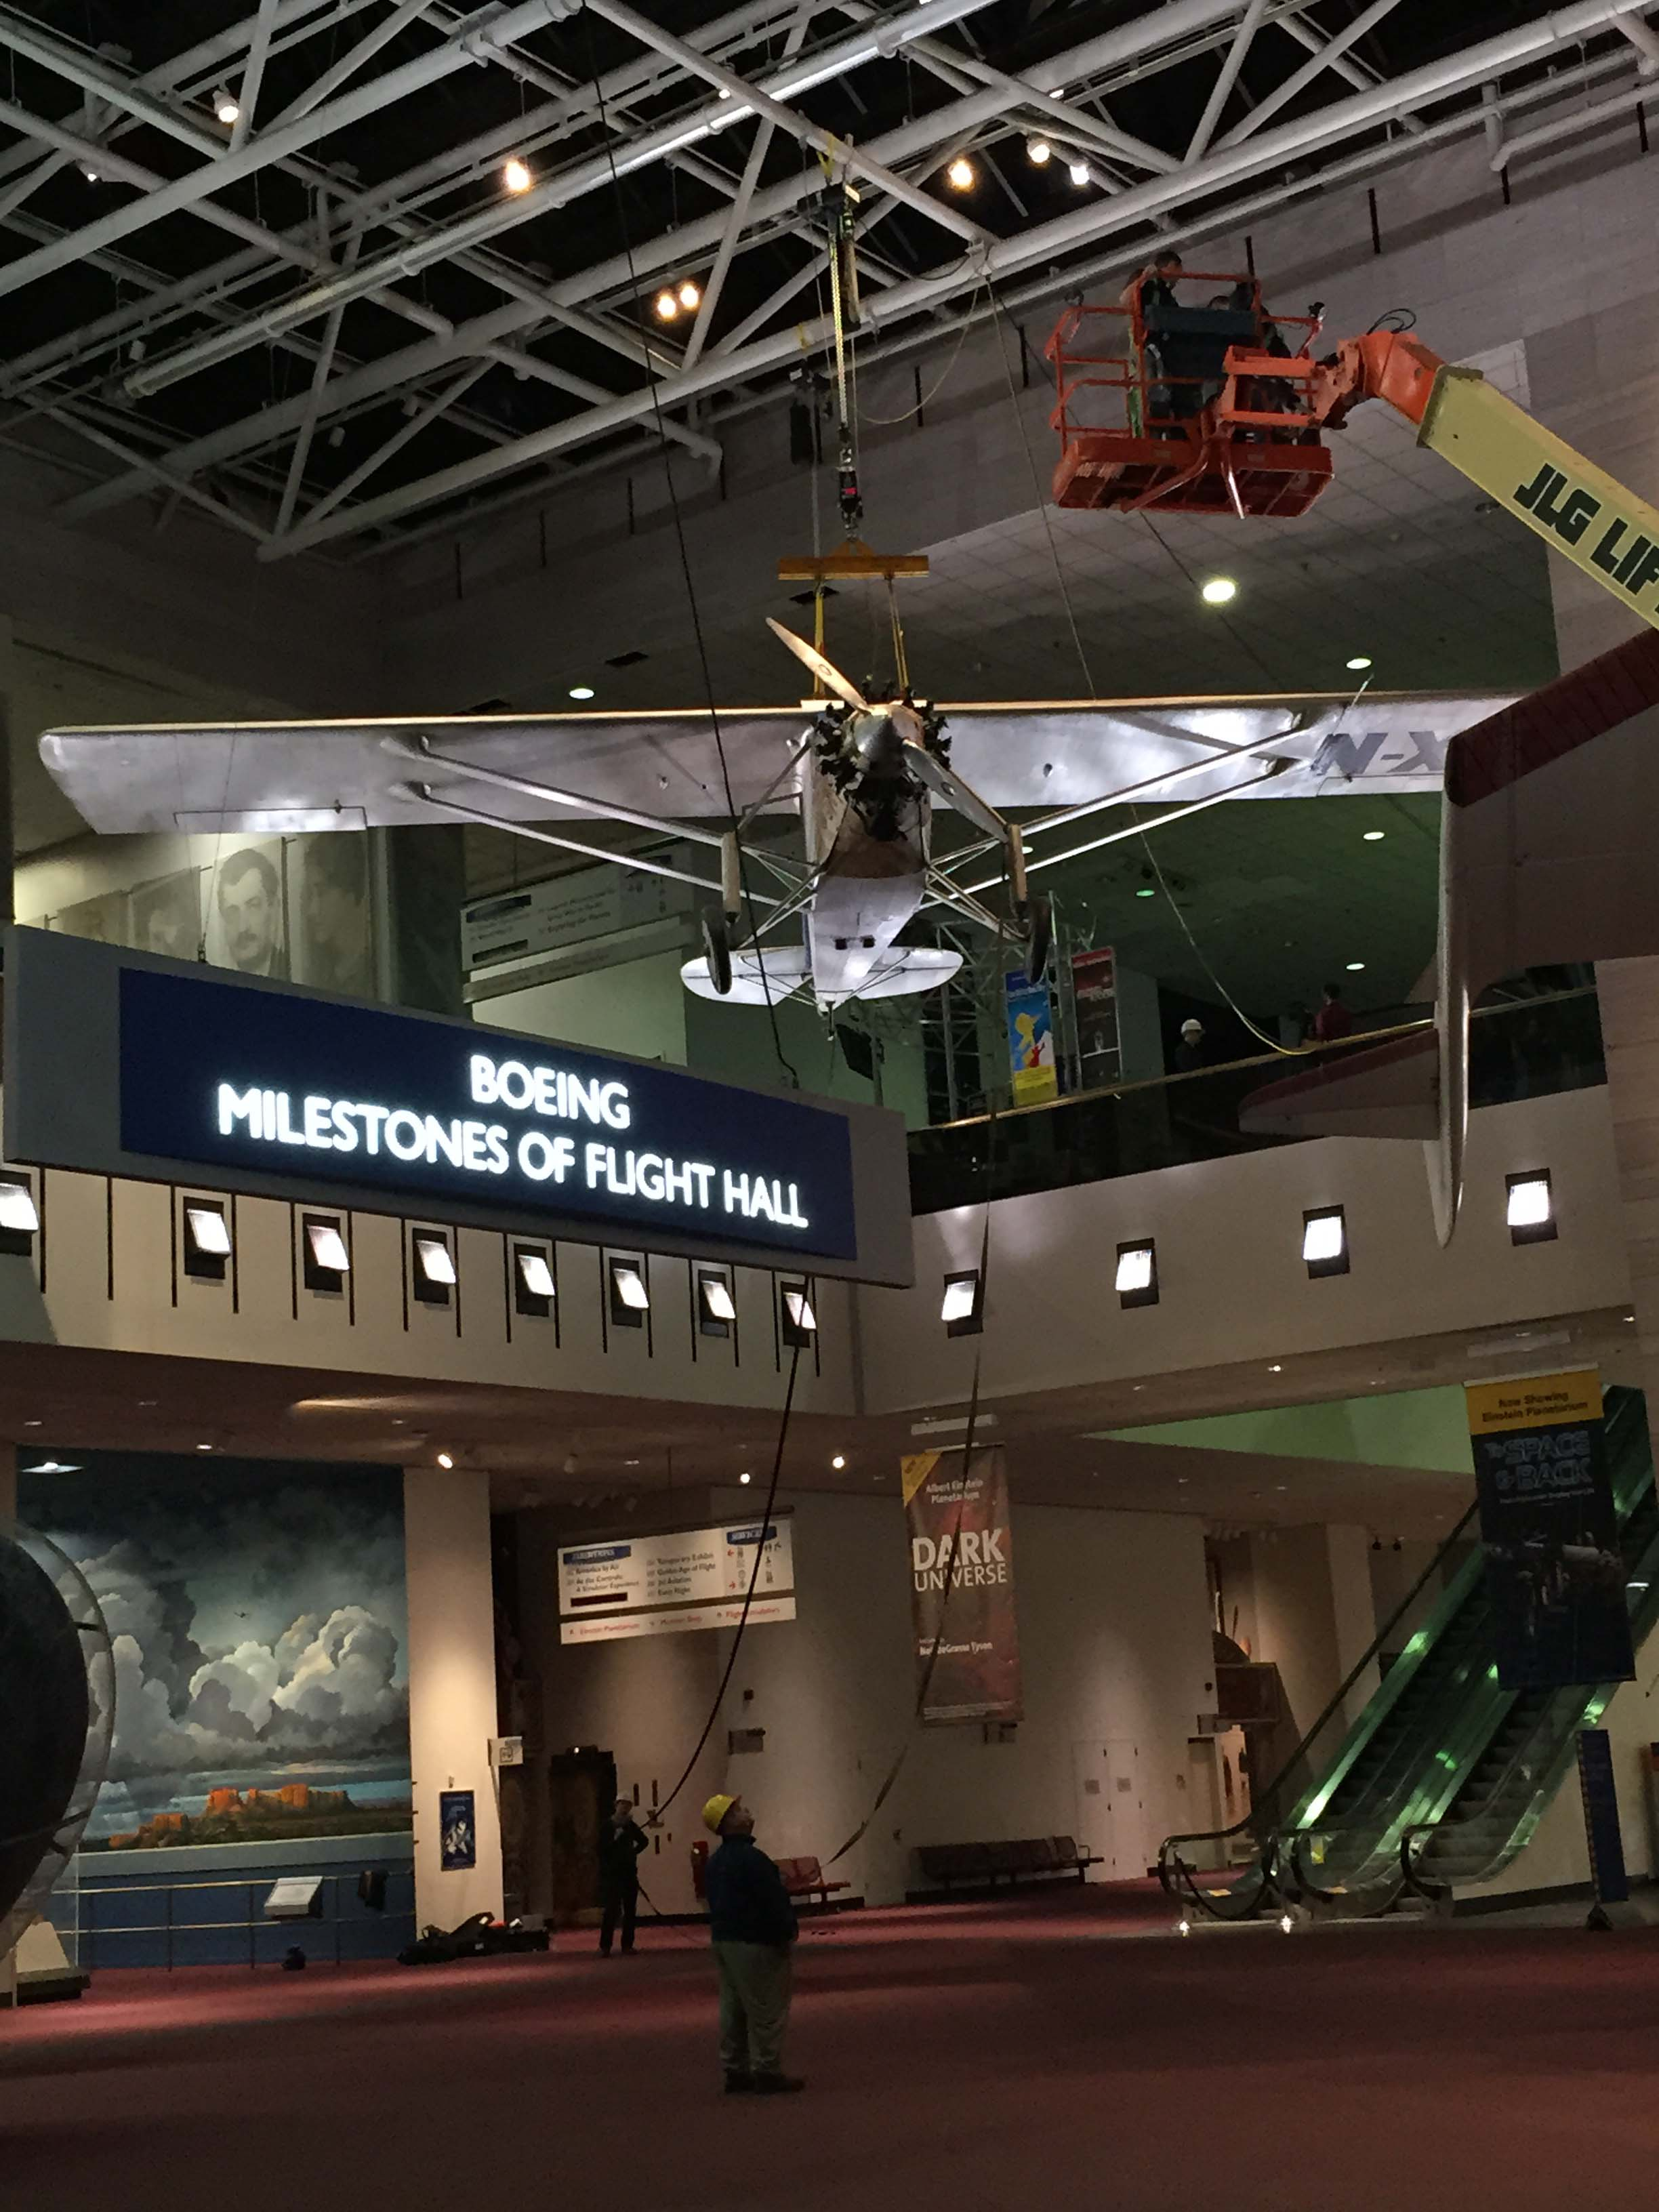 Spirit of St. Louis Lowered in Boeing Milestones of Flight Hall